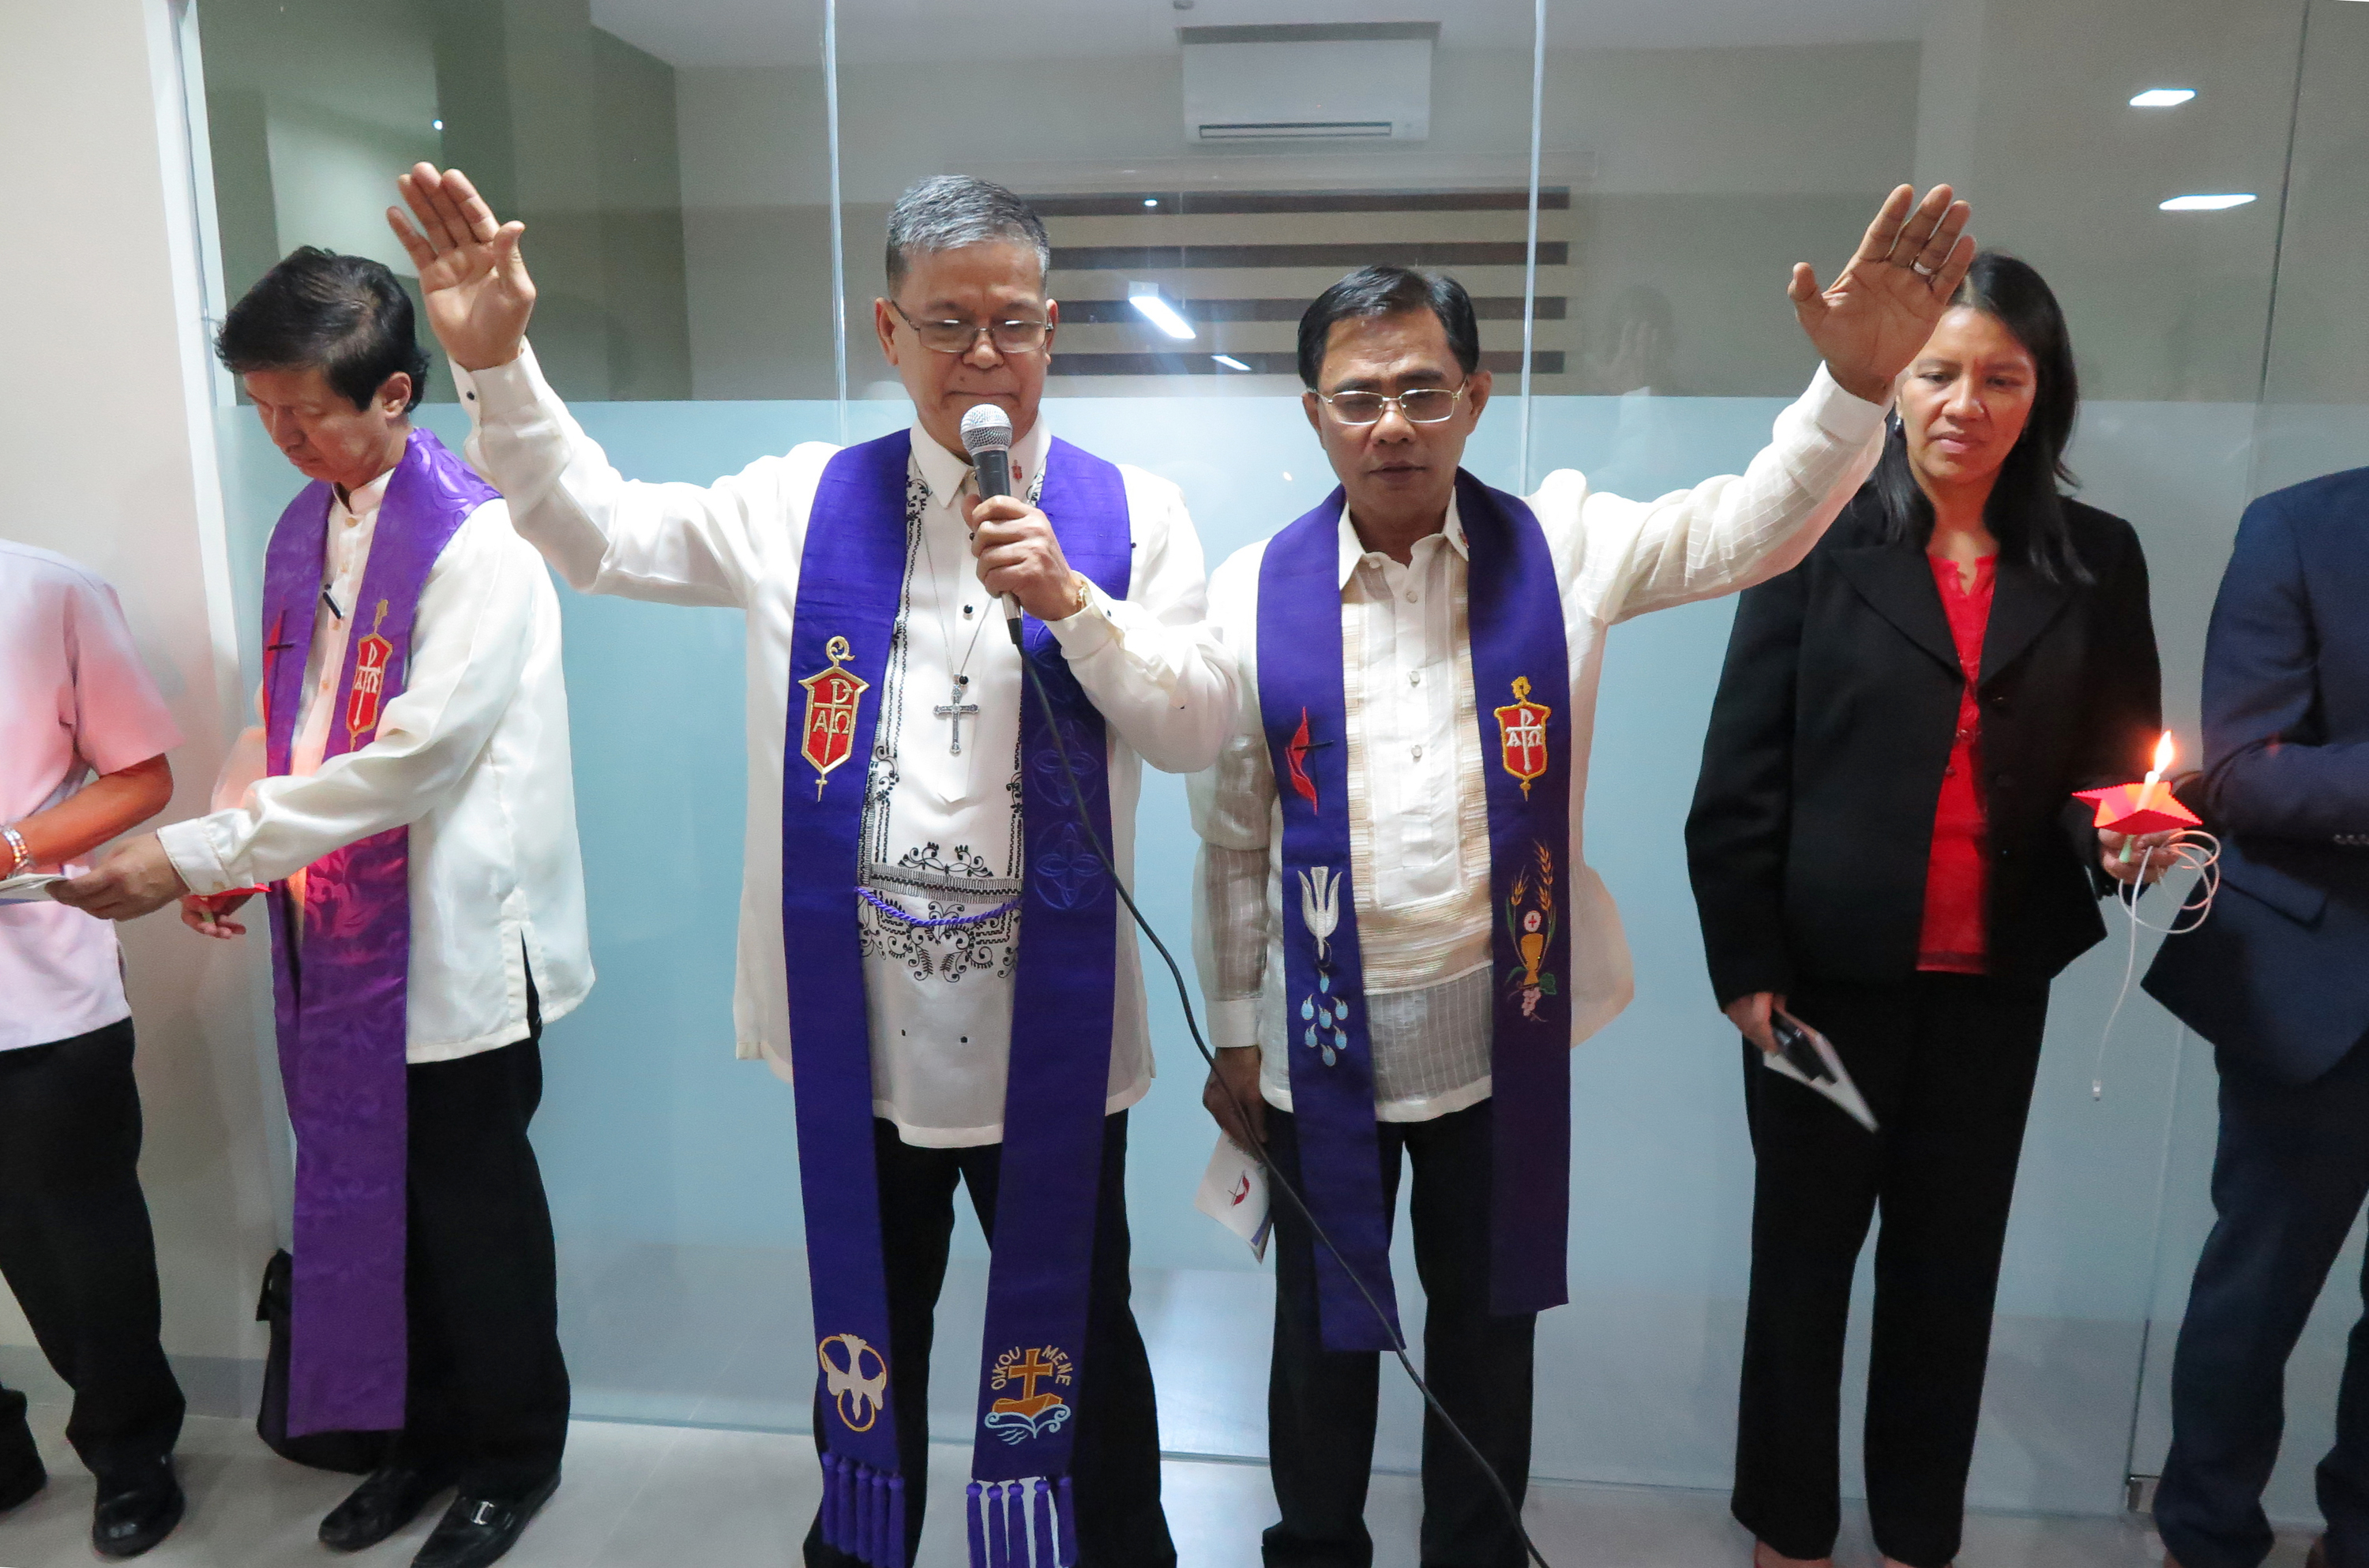 Bishops Ciriaco Q. Francisco and Rodolfo A. Juan raise their hands in blessing during the dedication ceremony. Bishop Pedro M.  Torio Jr. and the Rev. Amy Valdez-Barker are in the background. Photo by Tim Tanton, UMNS.